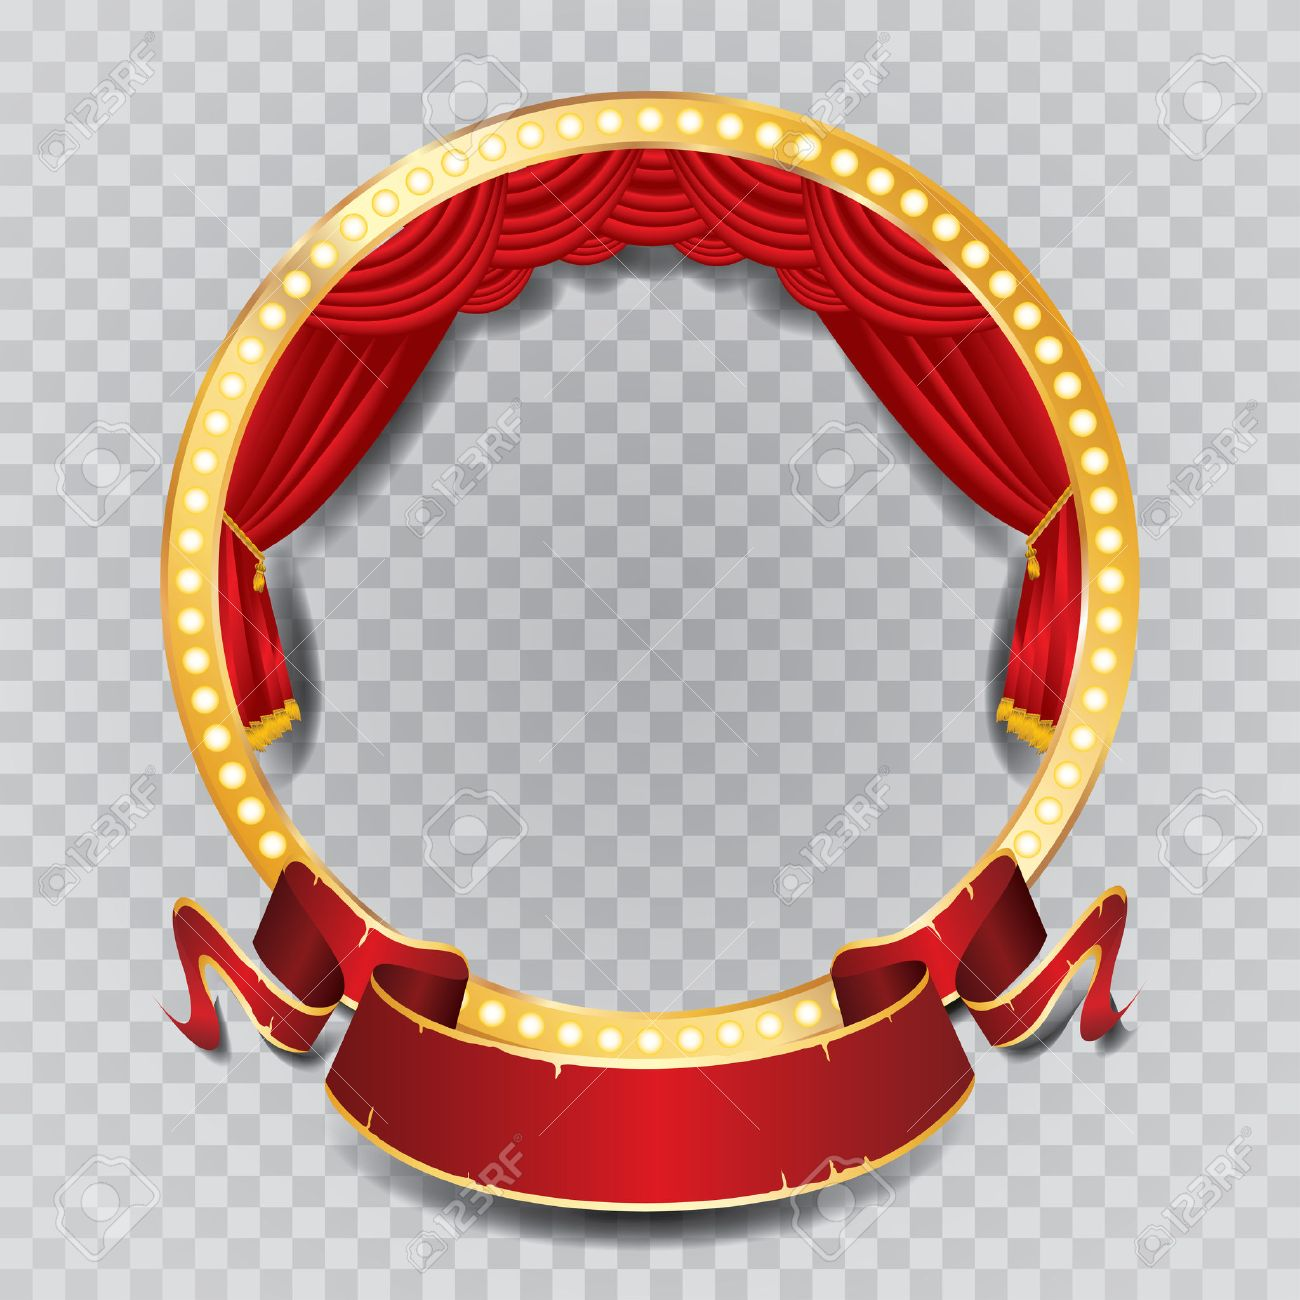 vector circle stage with red curtain, golden frame, bulb lamps and transparent shadow - 45578277